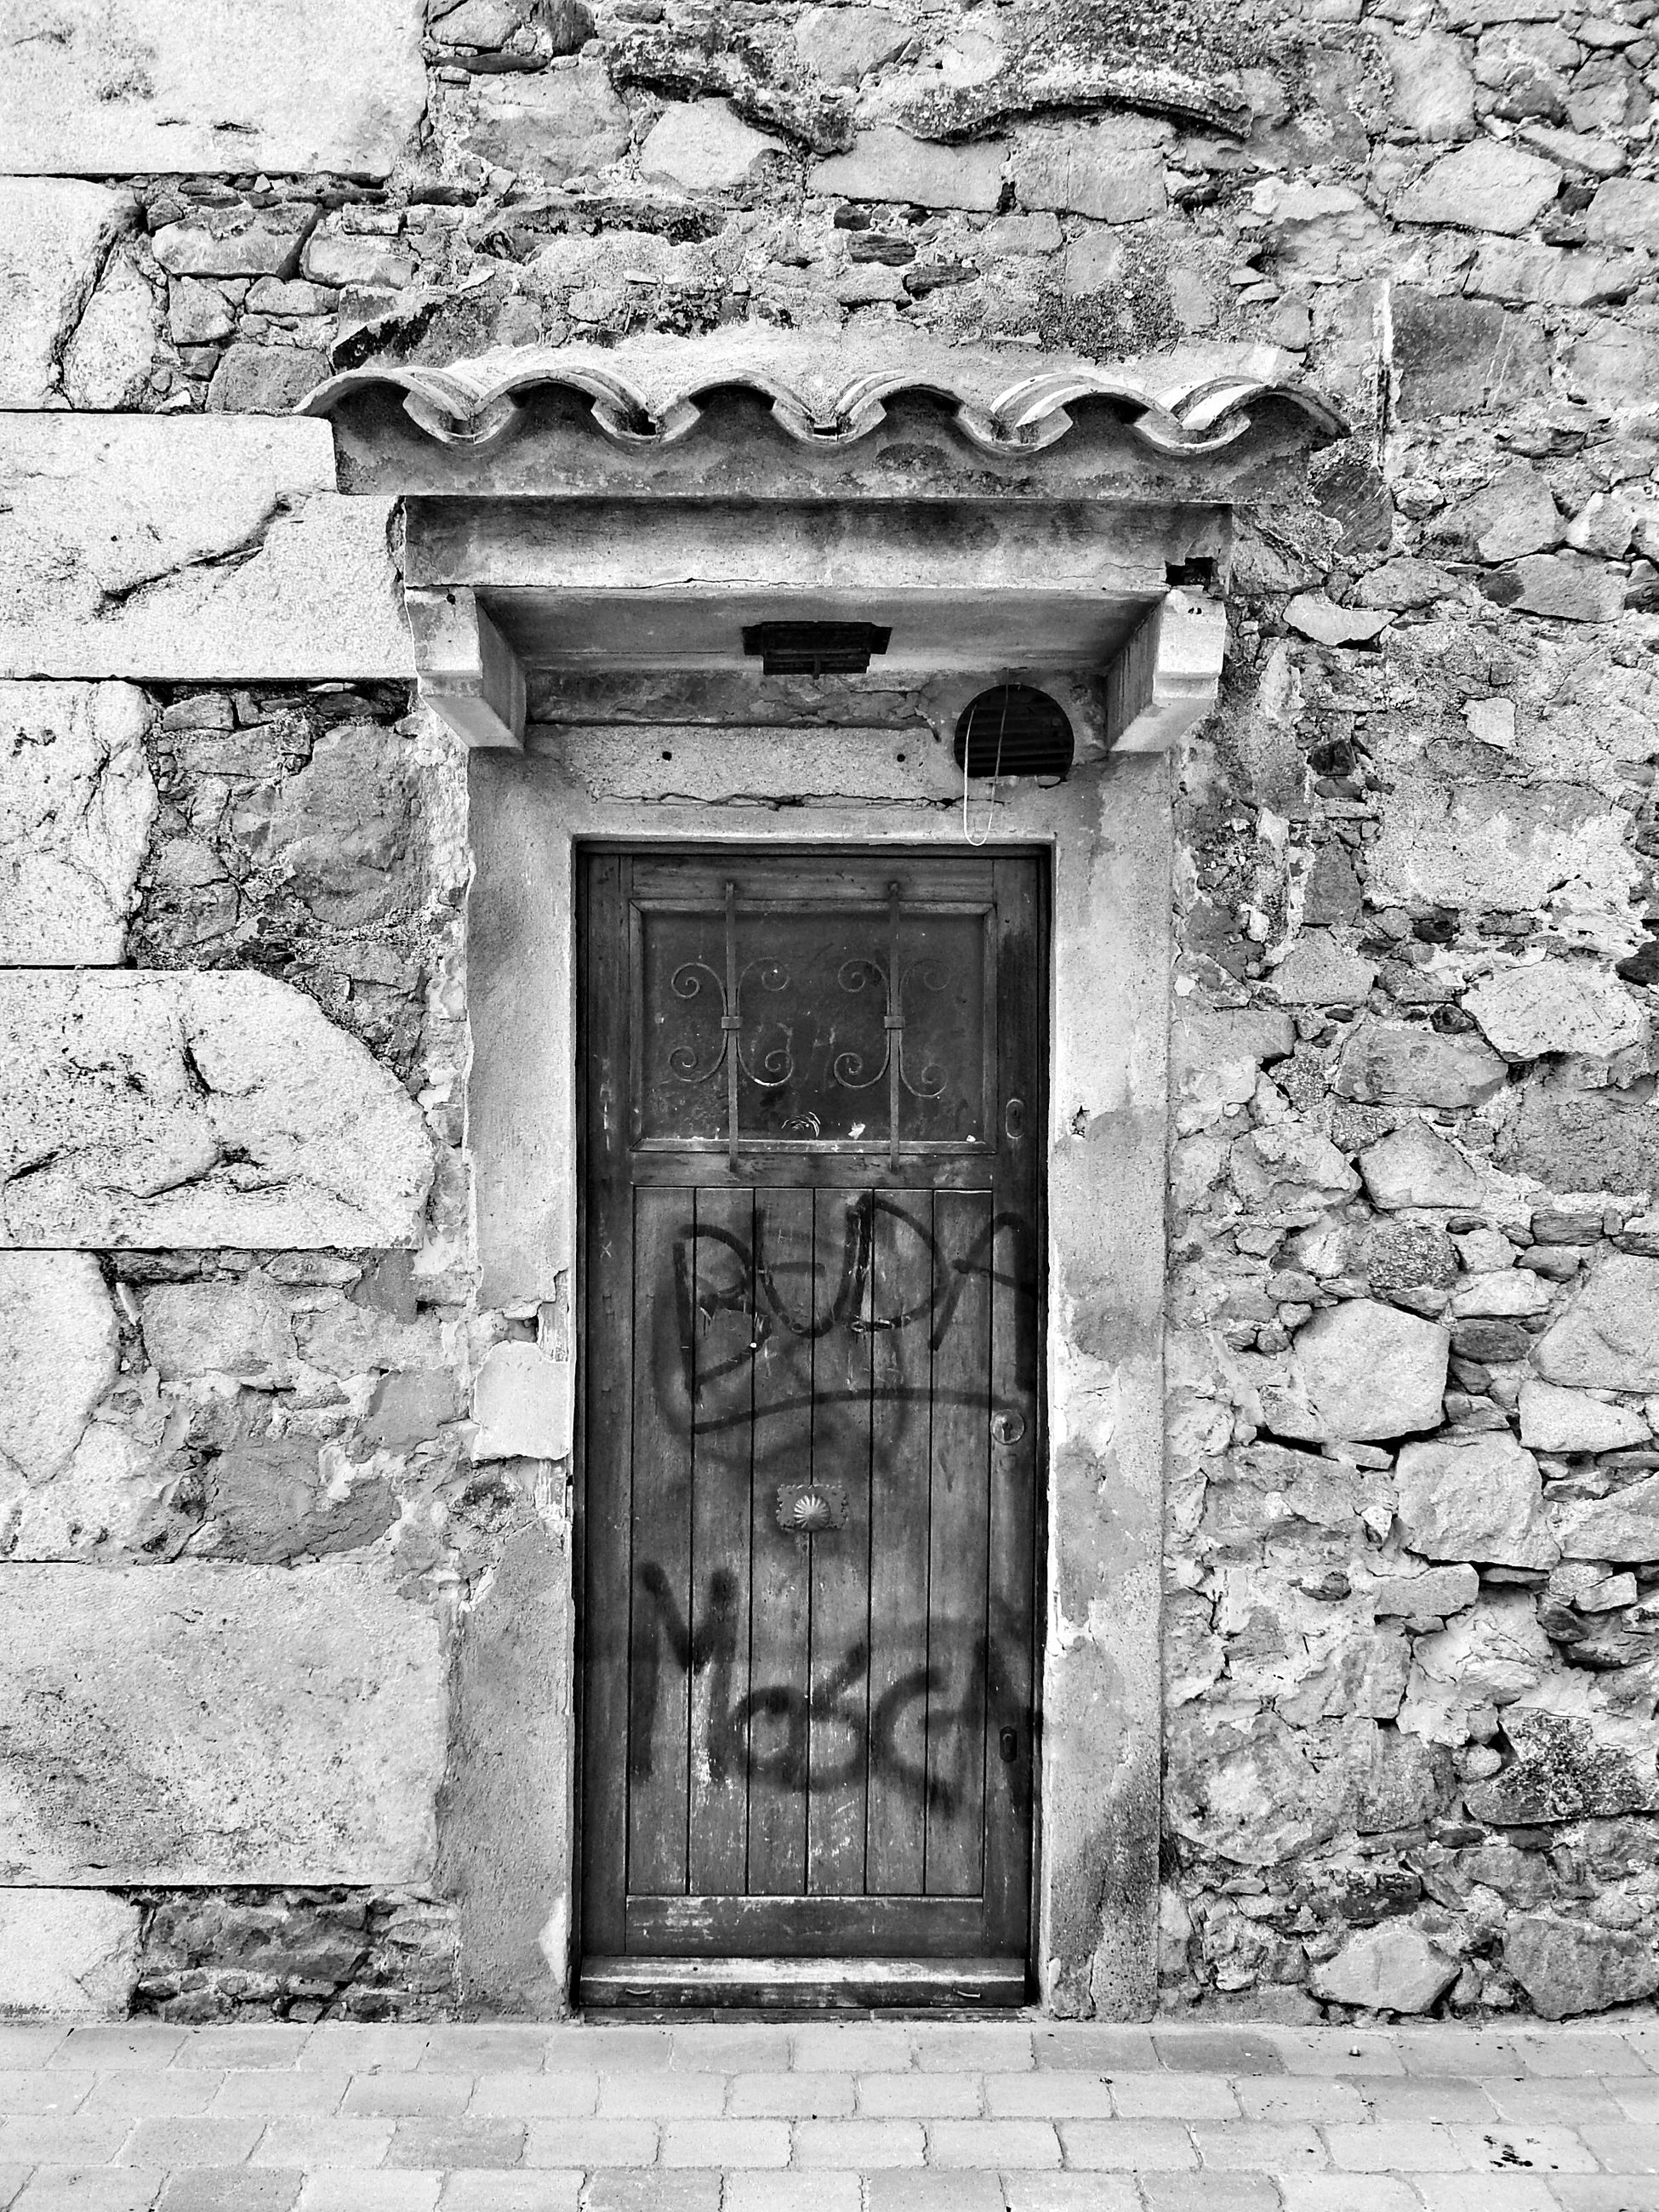 architecture, built structure, building exterior, door, closed, old, window, brick wall, wall - building feature, entrance, stone wall, weathered, wall, house, day, outdoors, no people, protection, facade, safety